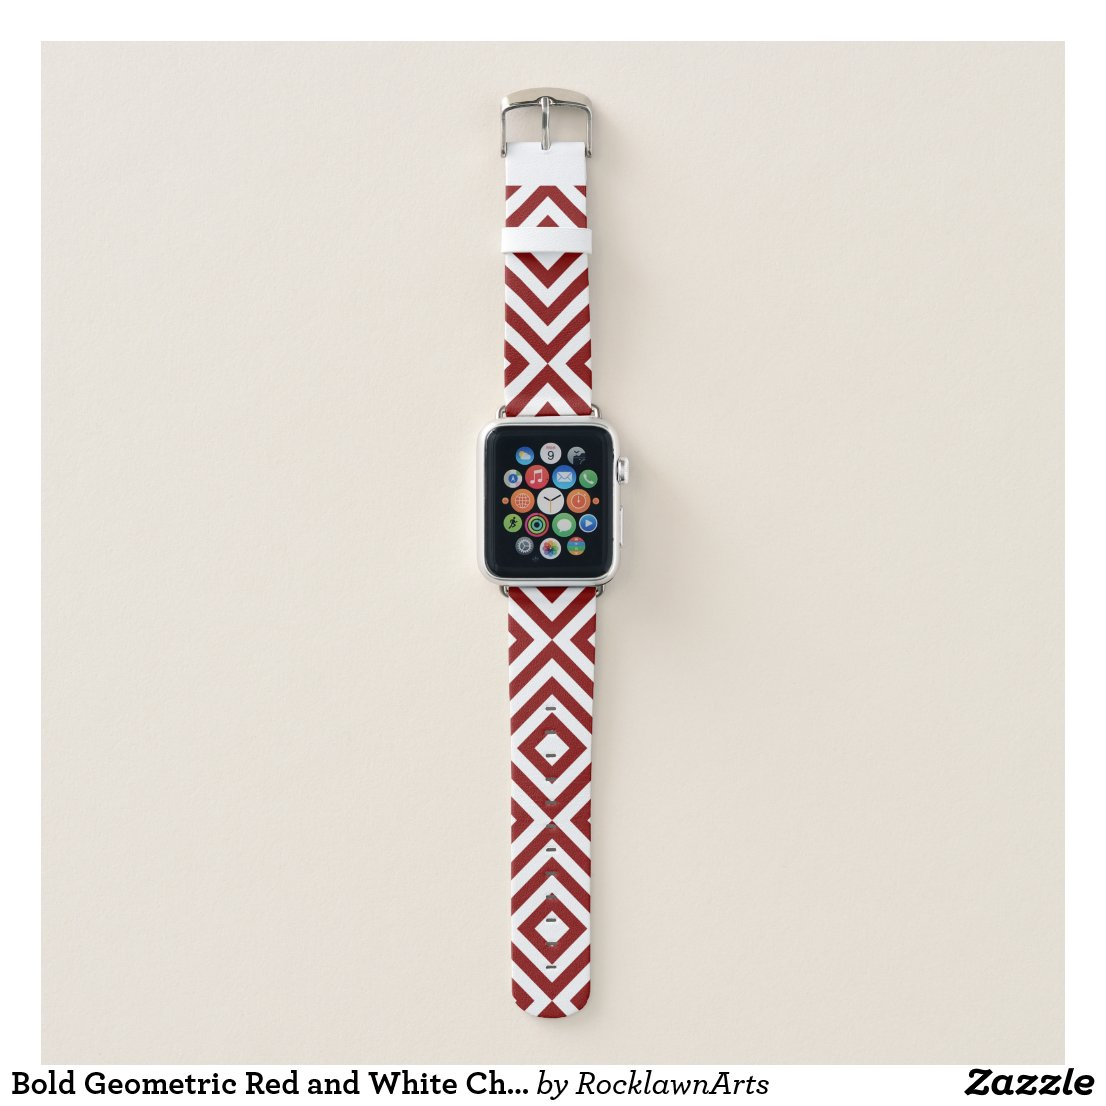 Bold Geometric Red and White Chevrons, Diamonds Apple Watch Band